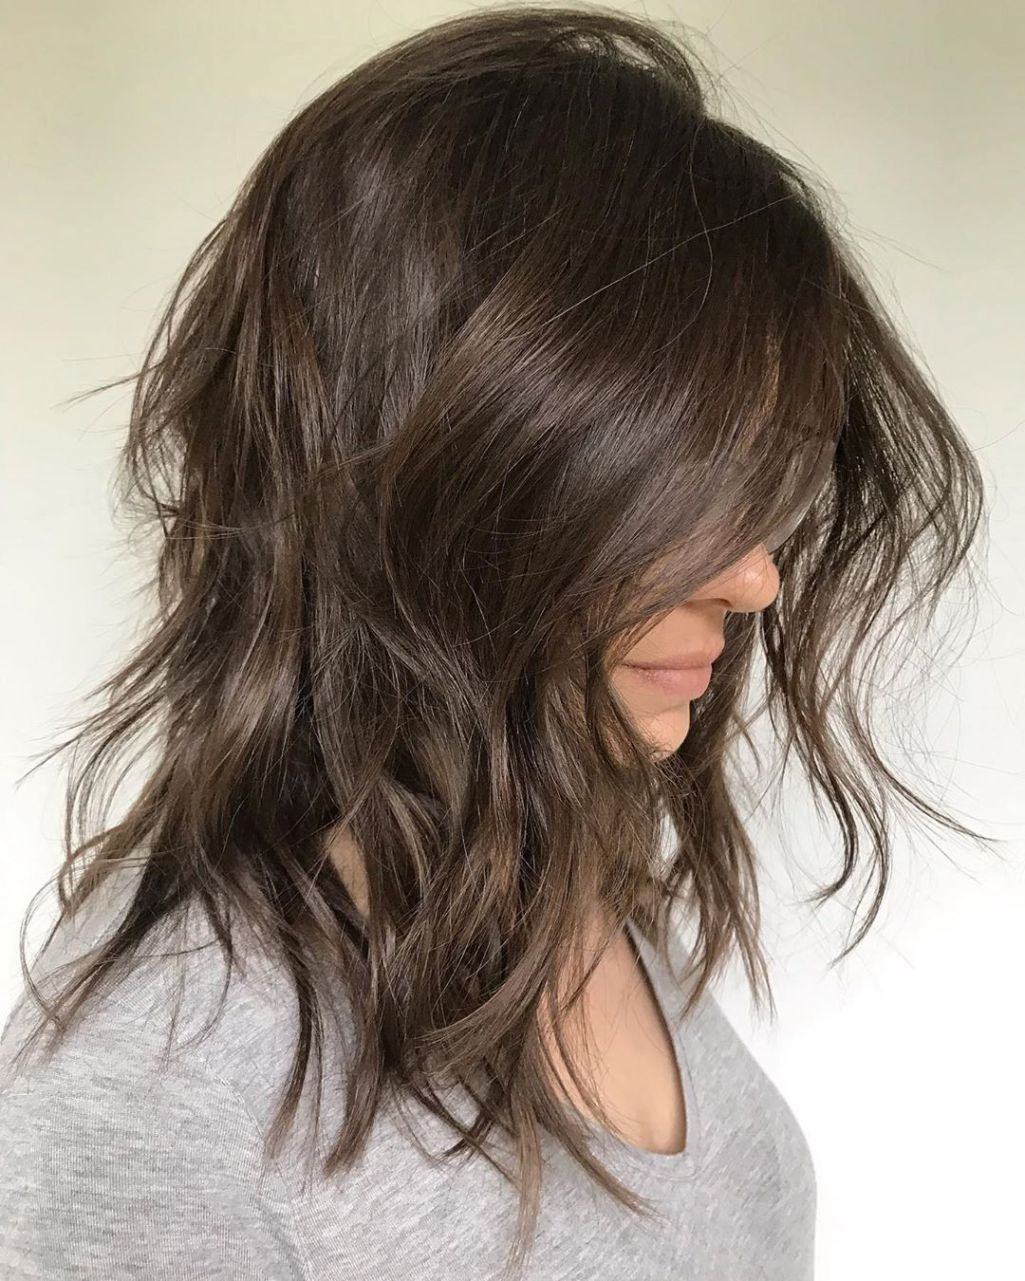 50 Medium Haircuts For Women That Ll Be Huge In 2020 Hair Adviser Adviser Hair Hair In 2020 Medium Hair Styles Womens Haircuts Medium Medium Hair Styles For Women